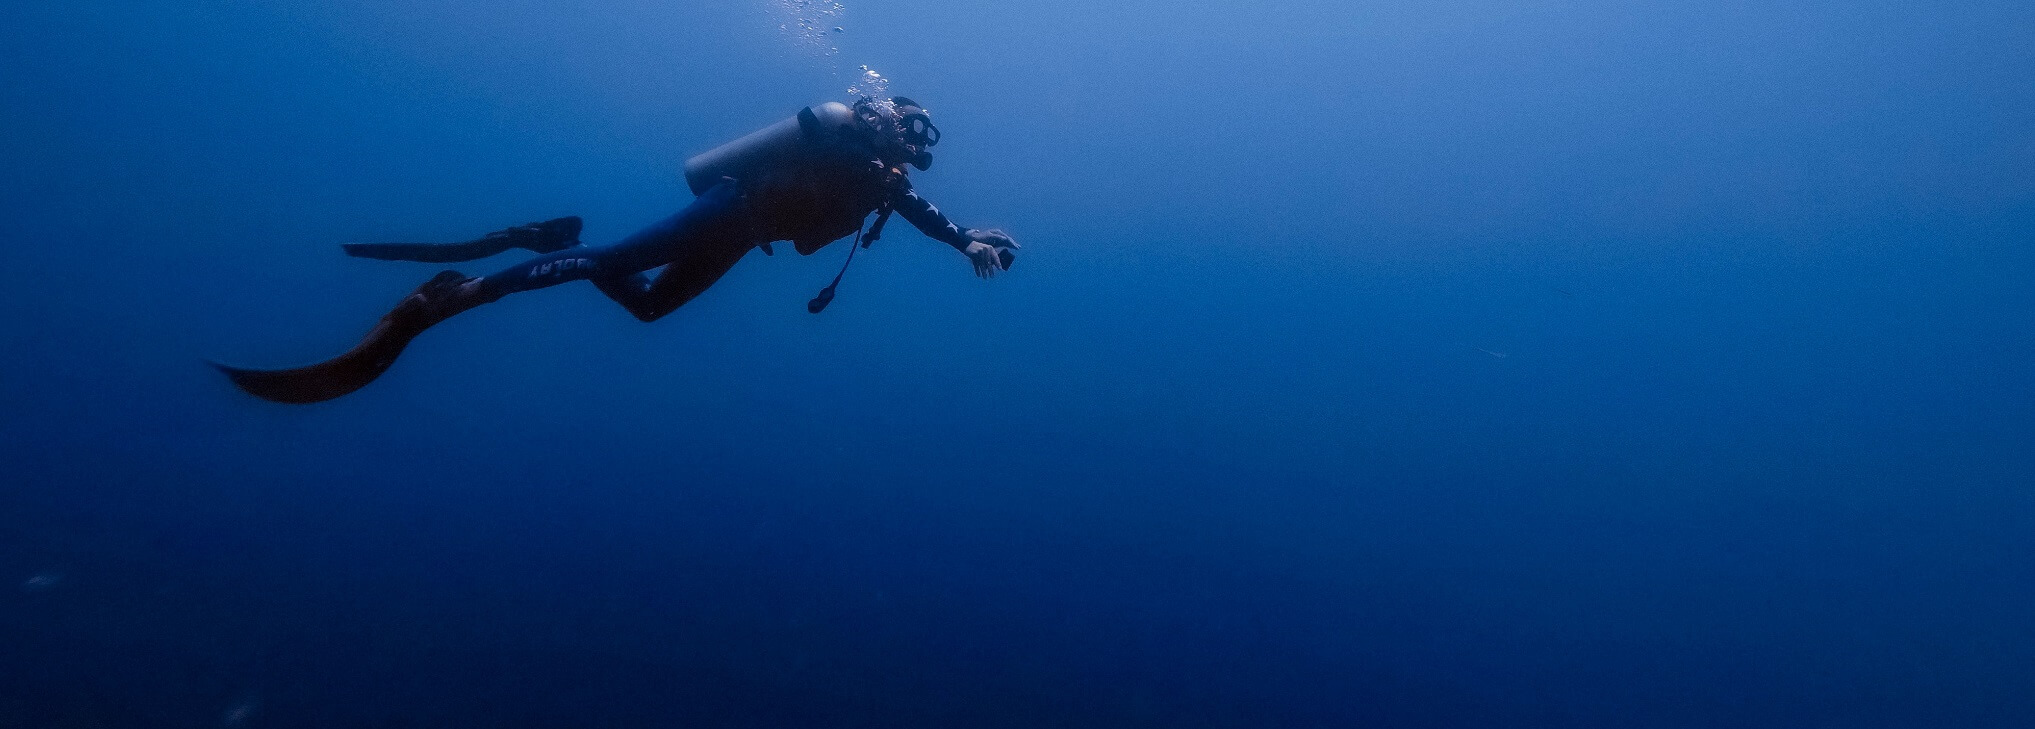 We believe in Diving to make a Difference-and that's why we Dive Differently